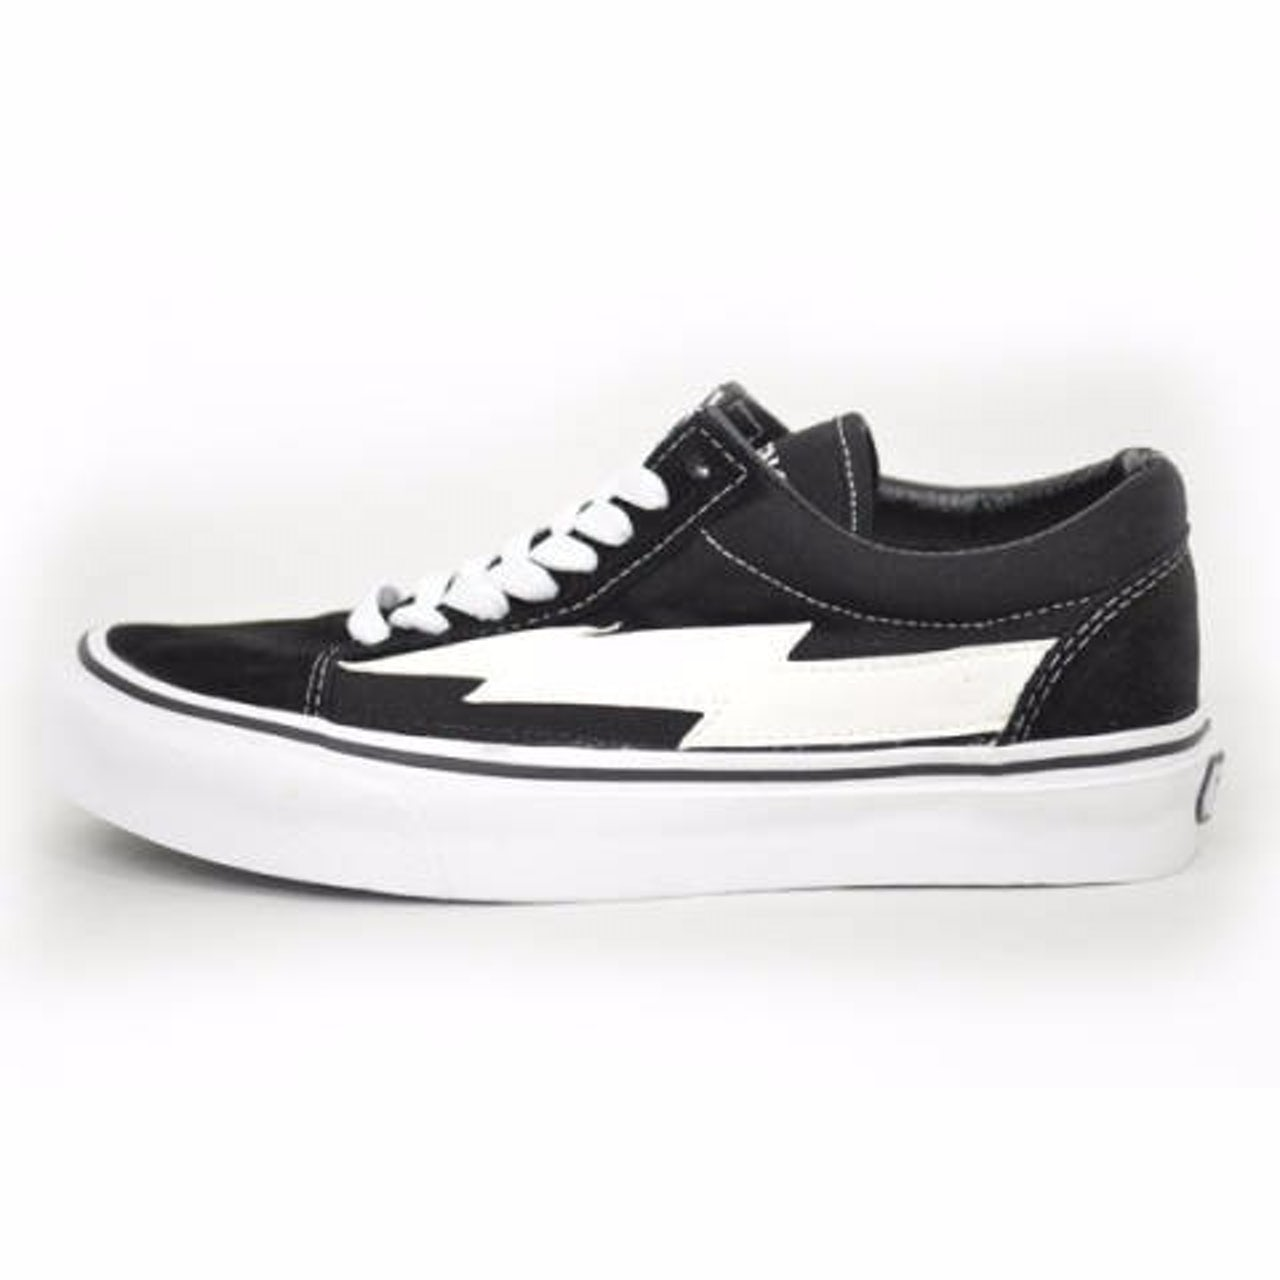 f0b6e7c3ed04 Product photo of the Revenge X Storm sneaker